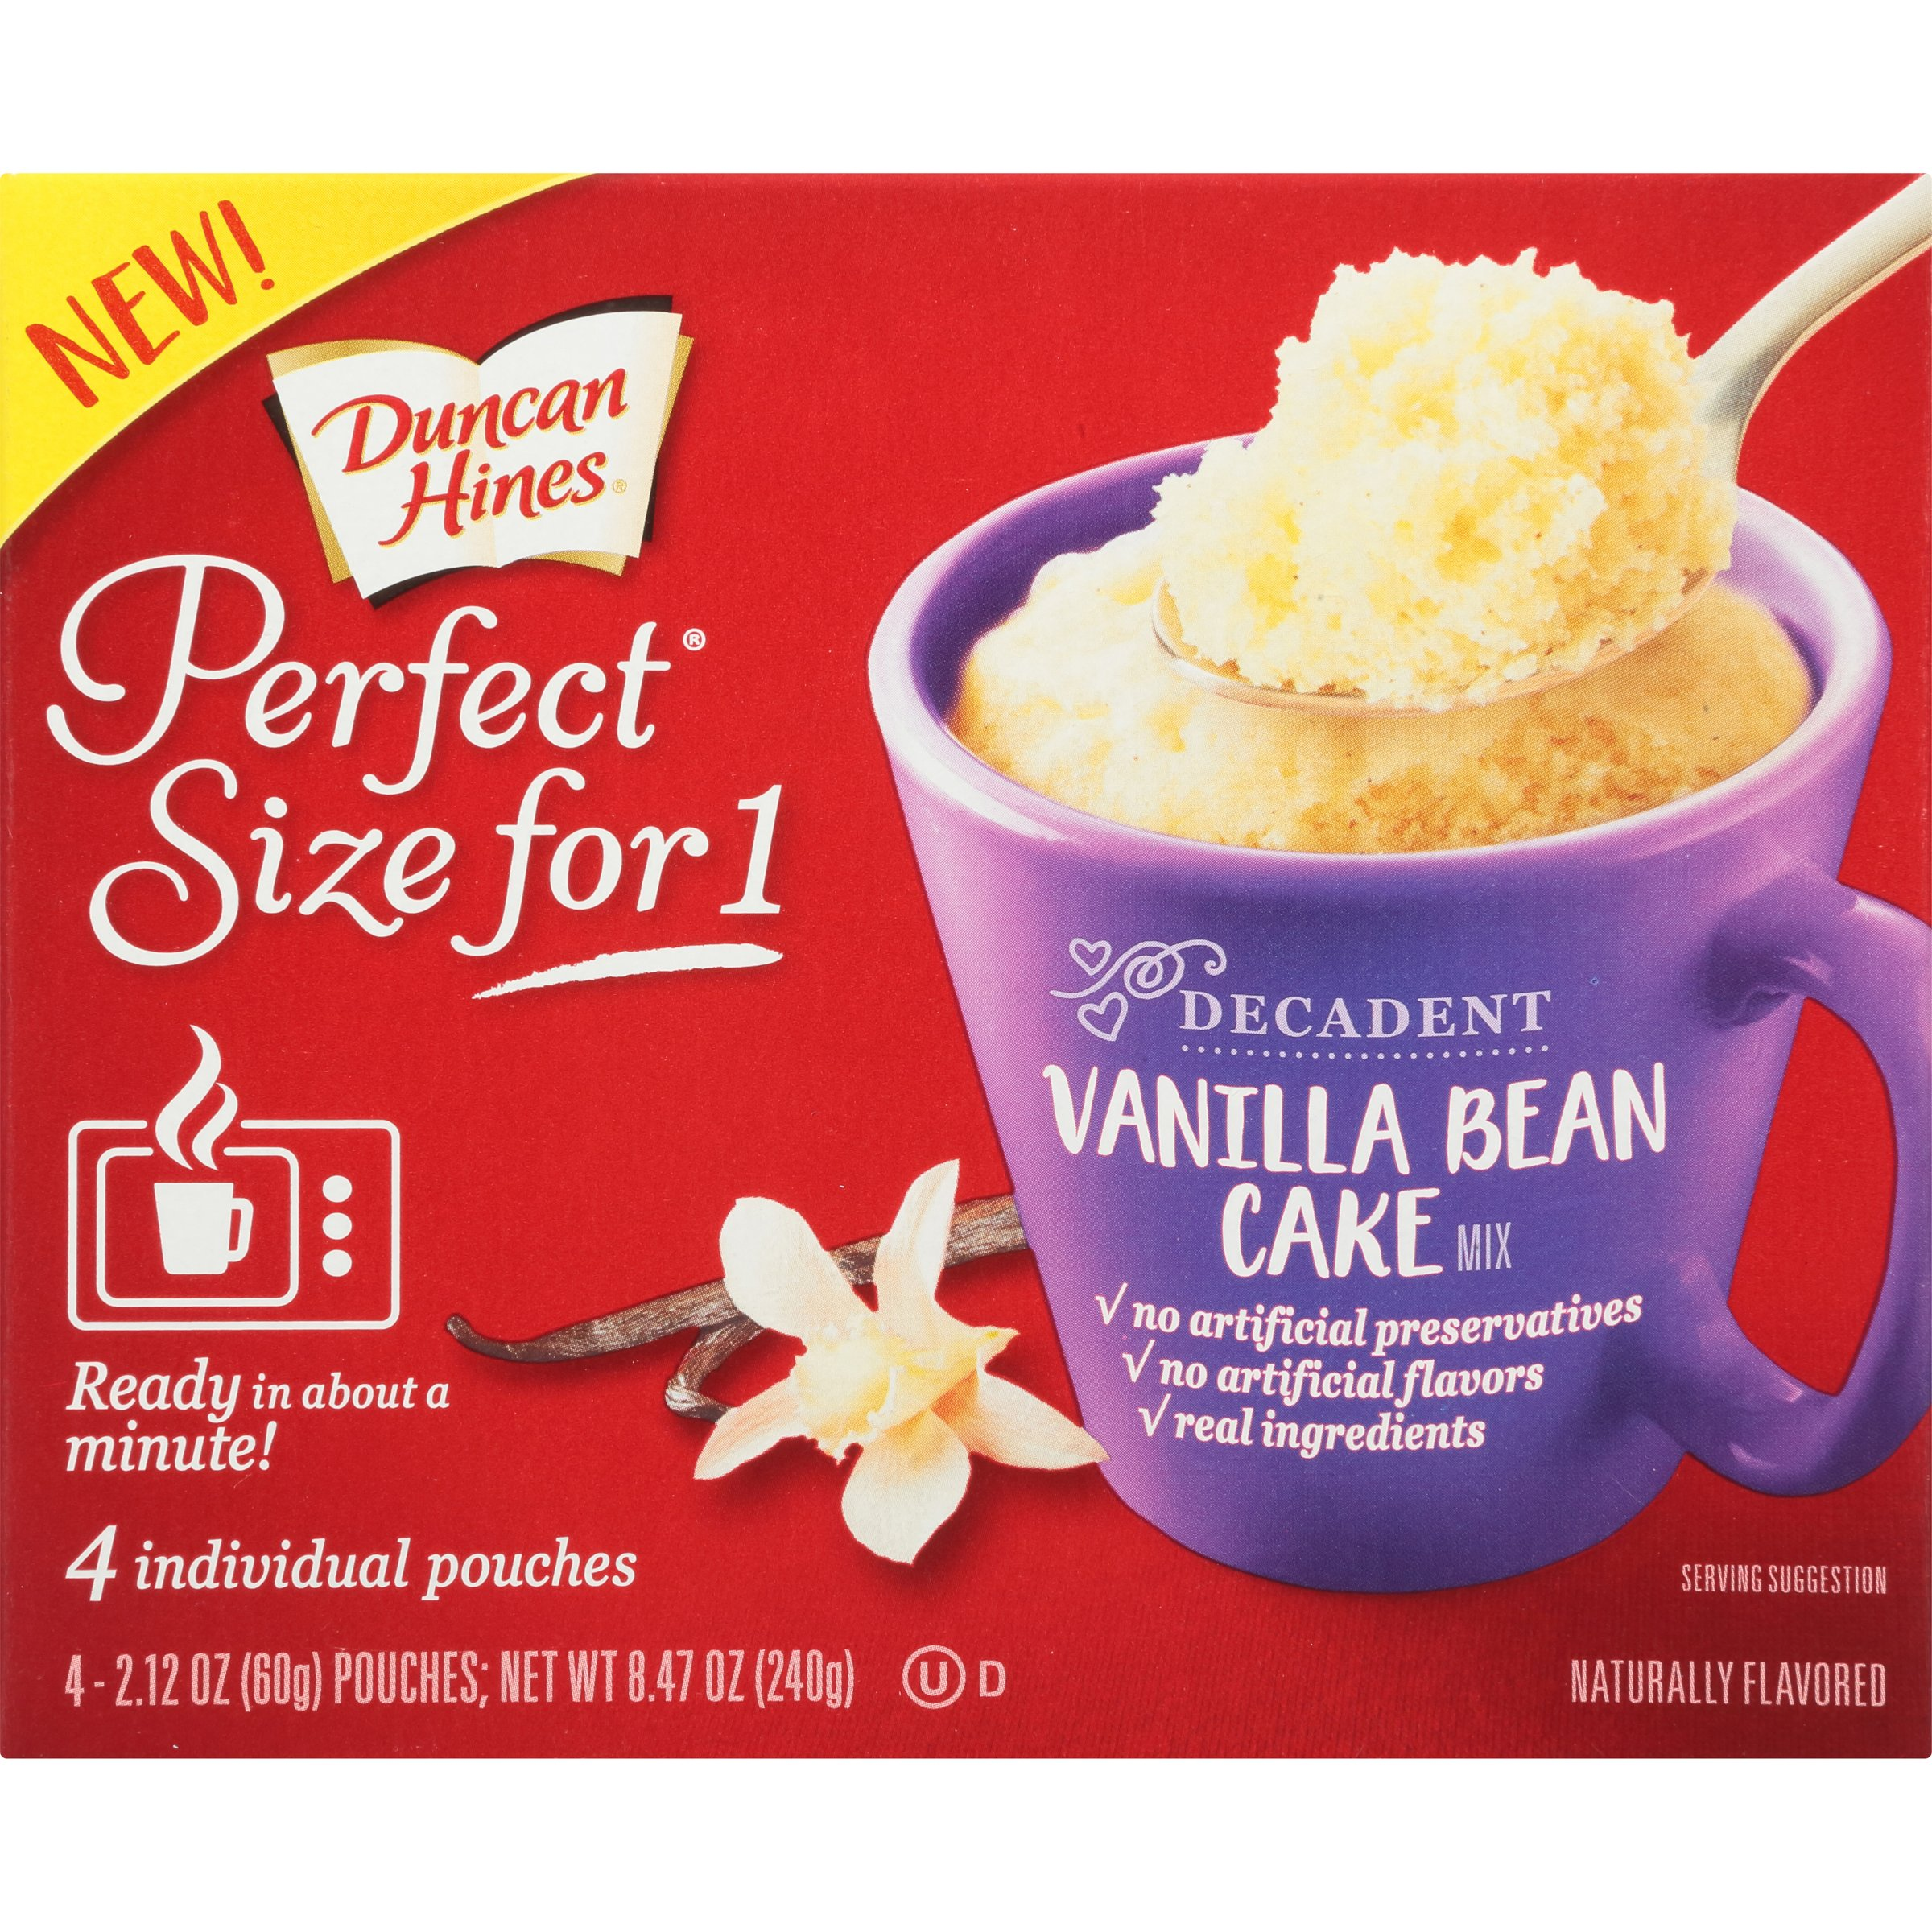 Duncan Hines Perfect Size for 1 Mug Cake Mix, Ready in About a Minute, Vanilla Bean Cake, 4 individual pouches